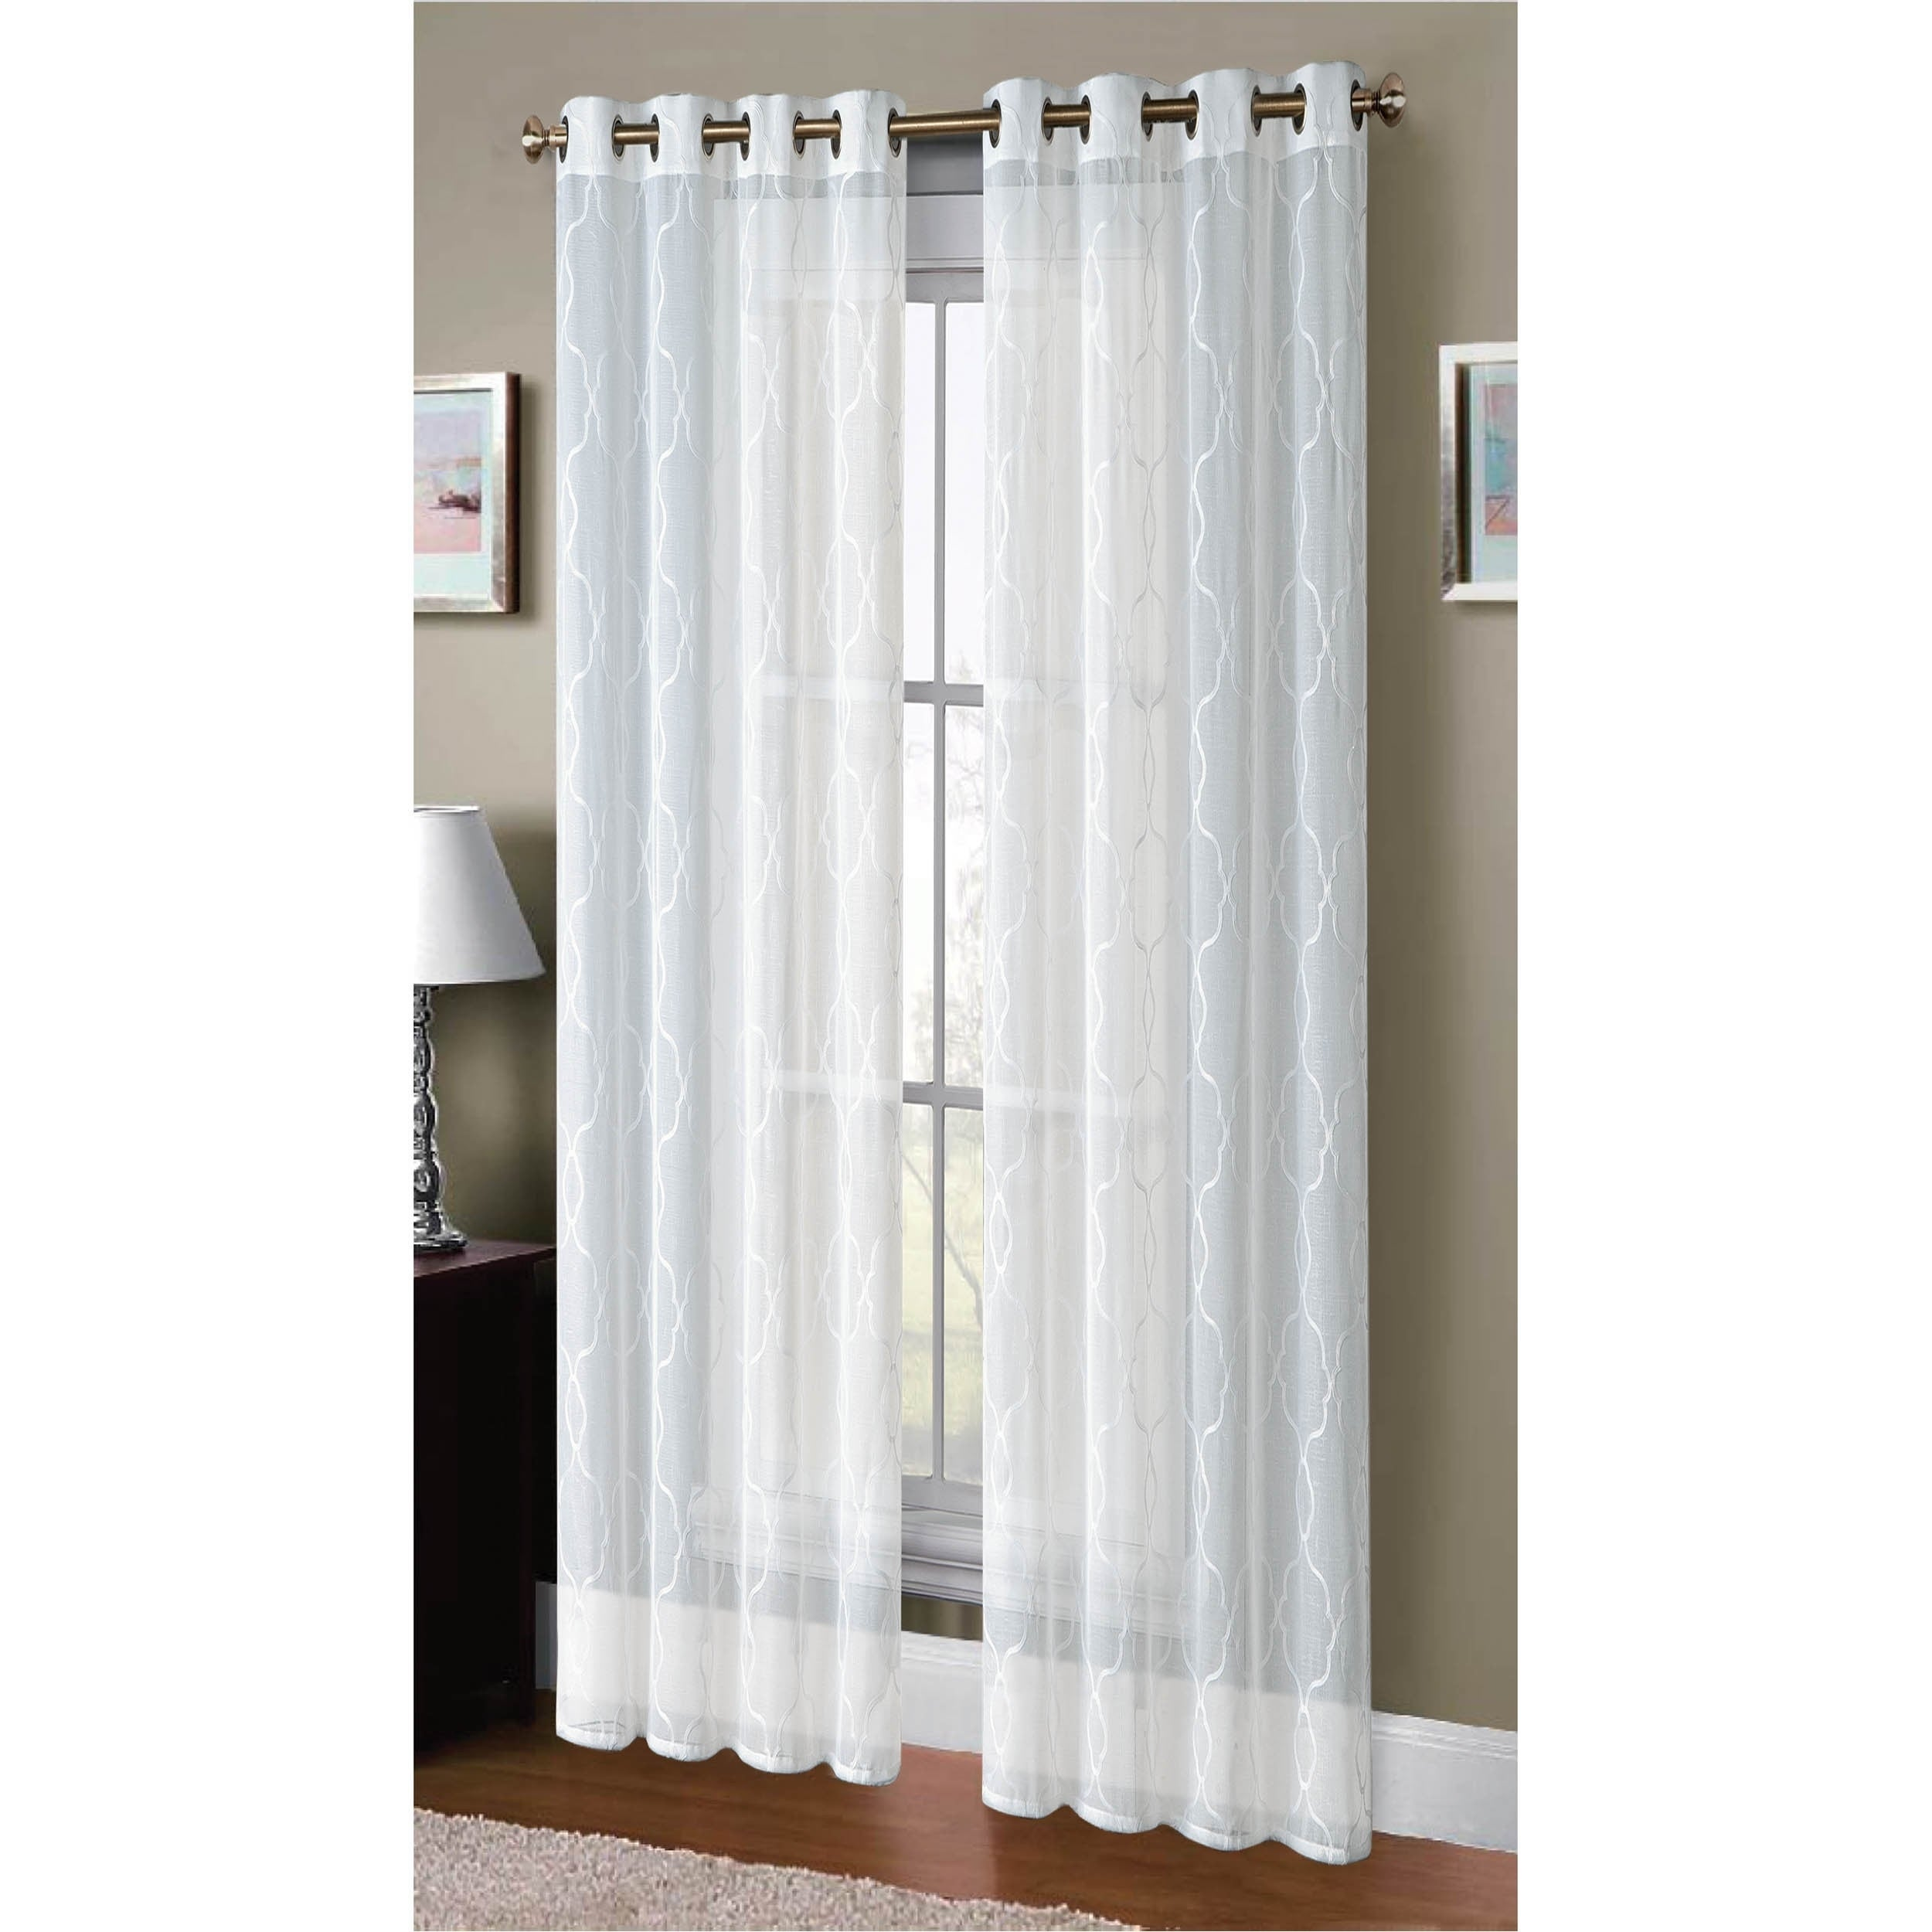 grommets white polyester dfohome escape curtains grommet curtain sheer with outdoor xx